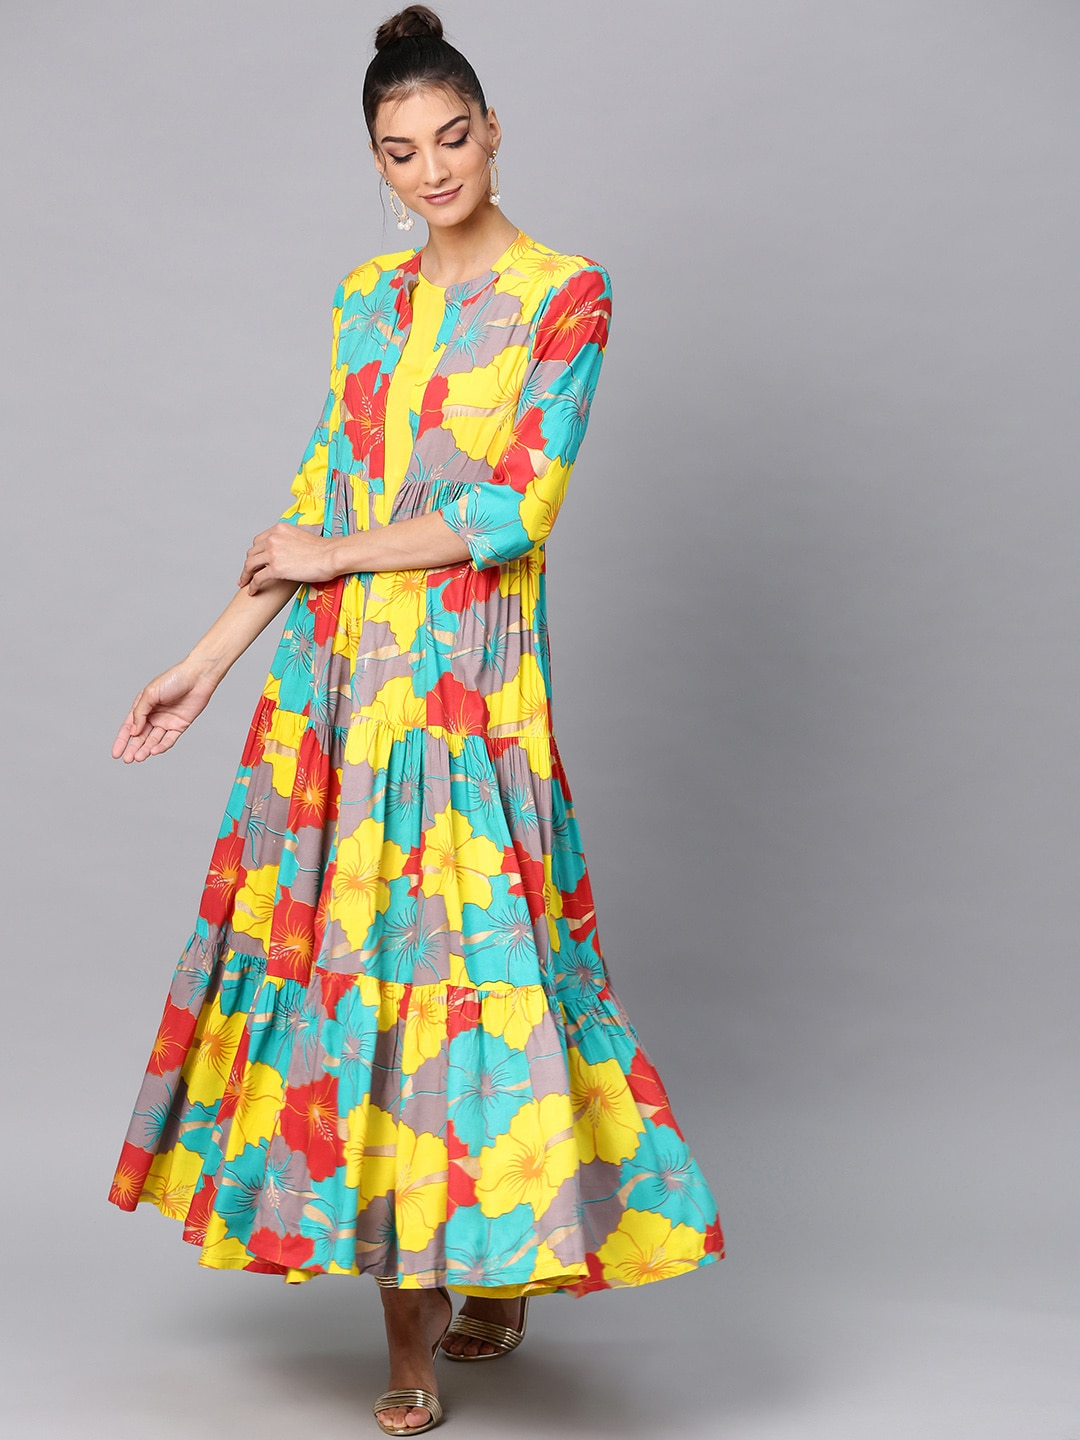 2bd66eff6 Yellow Dresses - Buy Yellow Dresses online in India